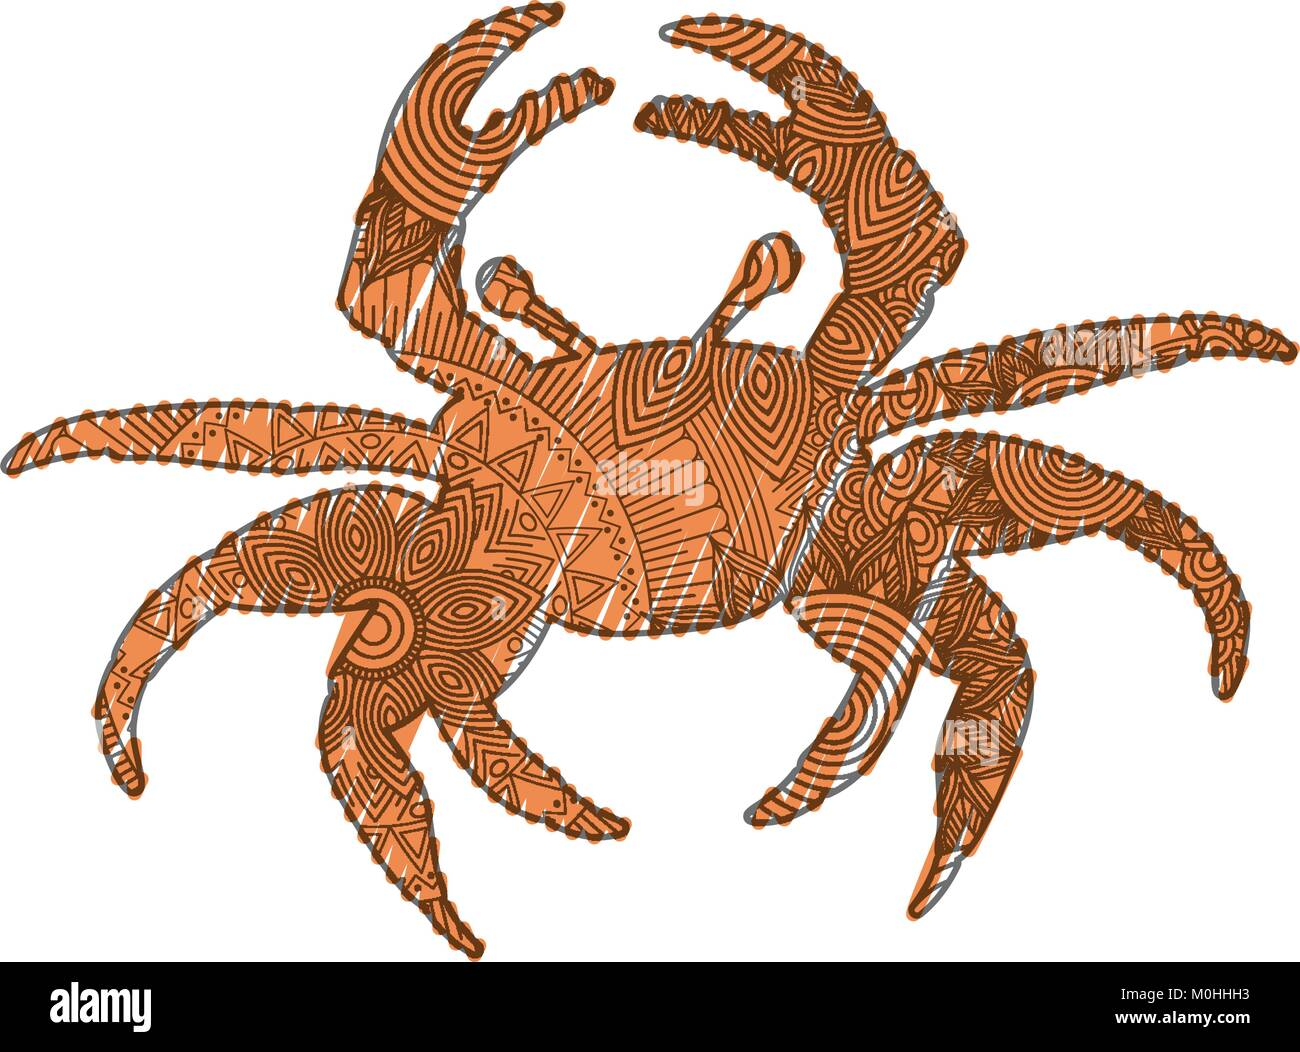 Hand Drawn For Adult Coloring Pages With Crab Zentangle Stock Vector Image Art Alamy